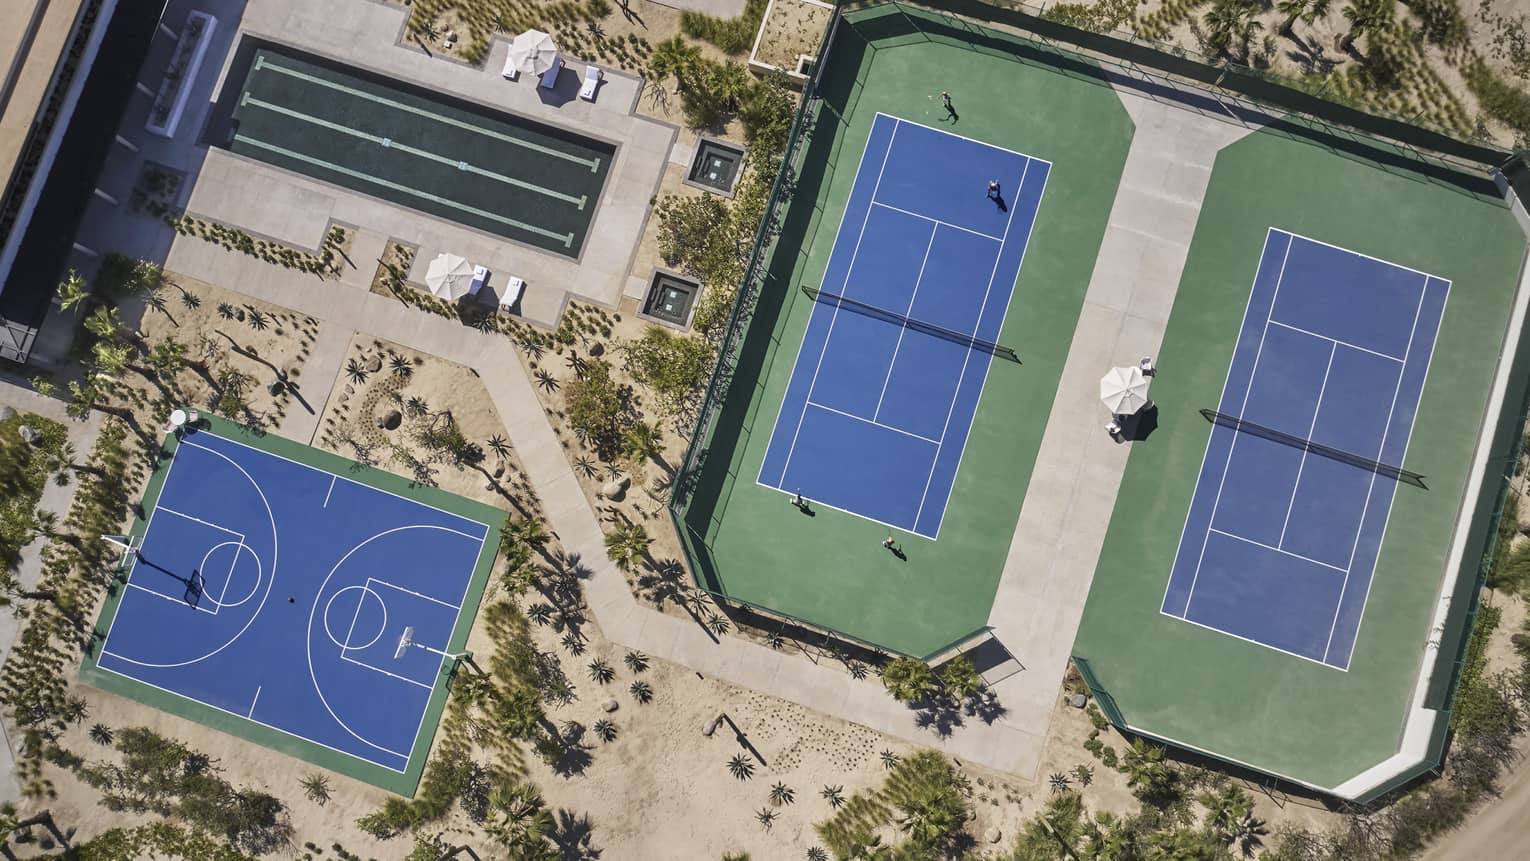 Aerial view of two green and blue tennis courts, one long rectangular pool and one blue basketball court surrounded by sand and greenery